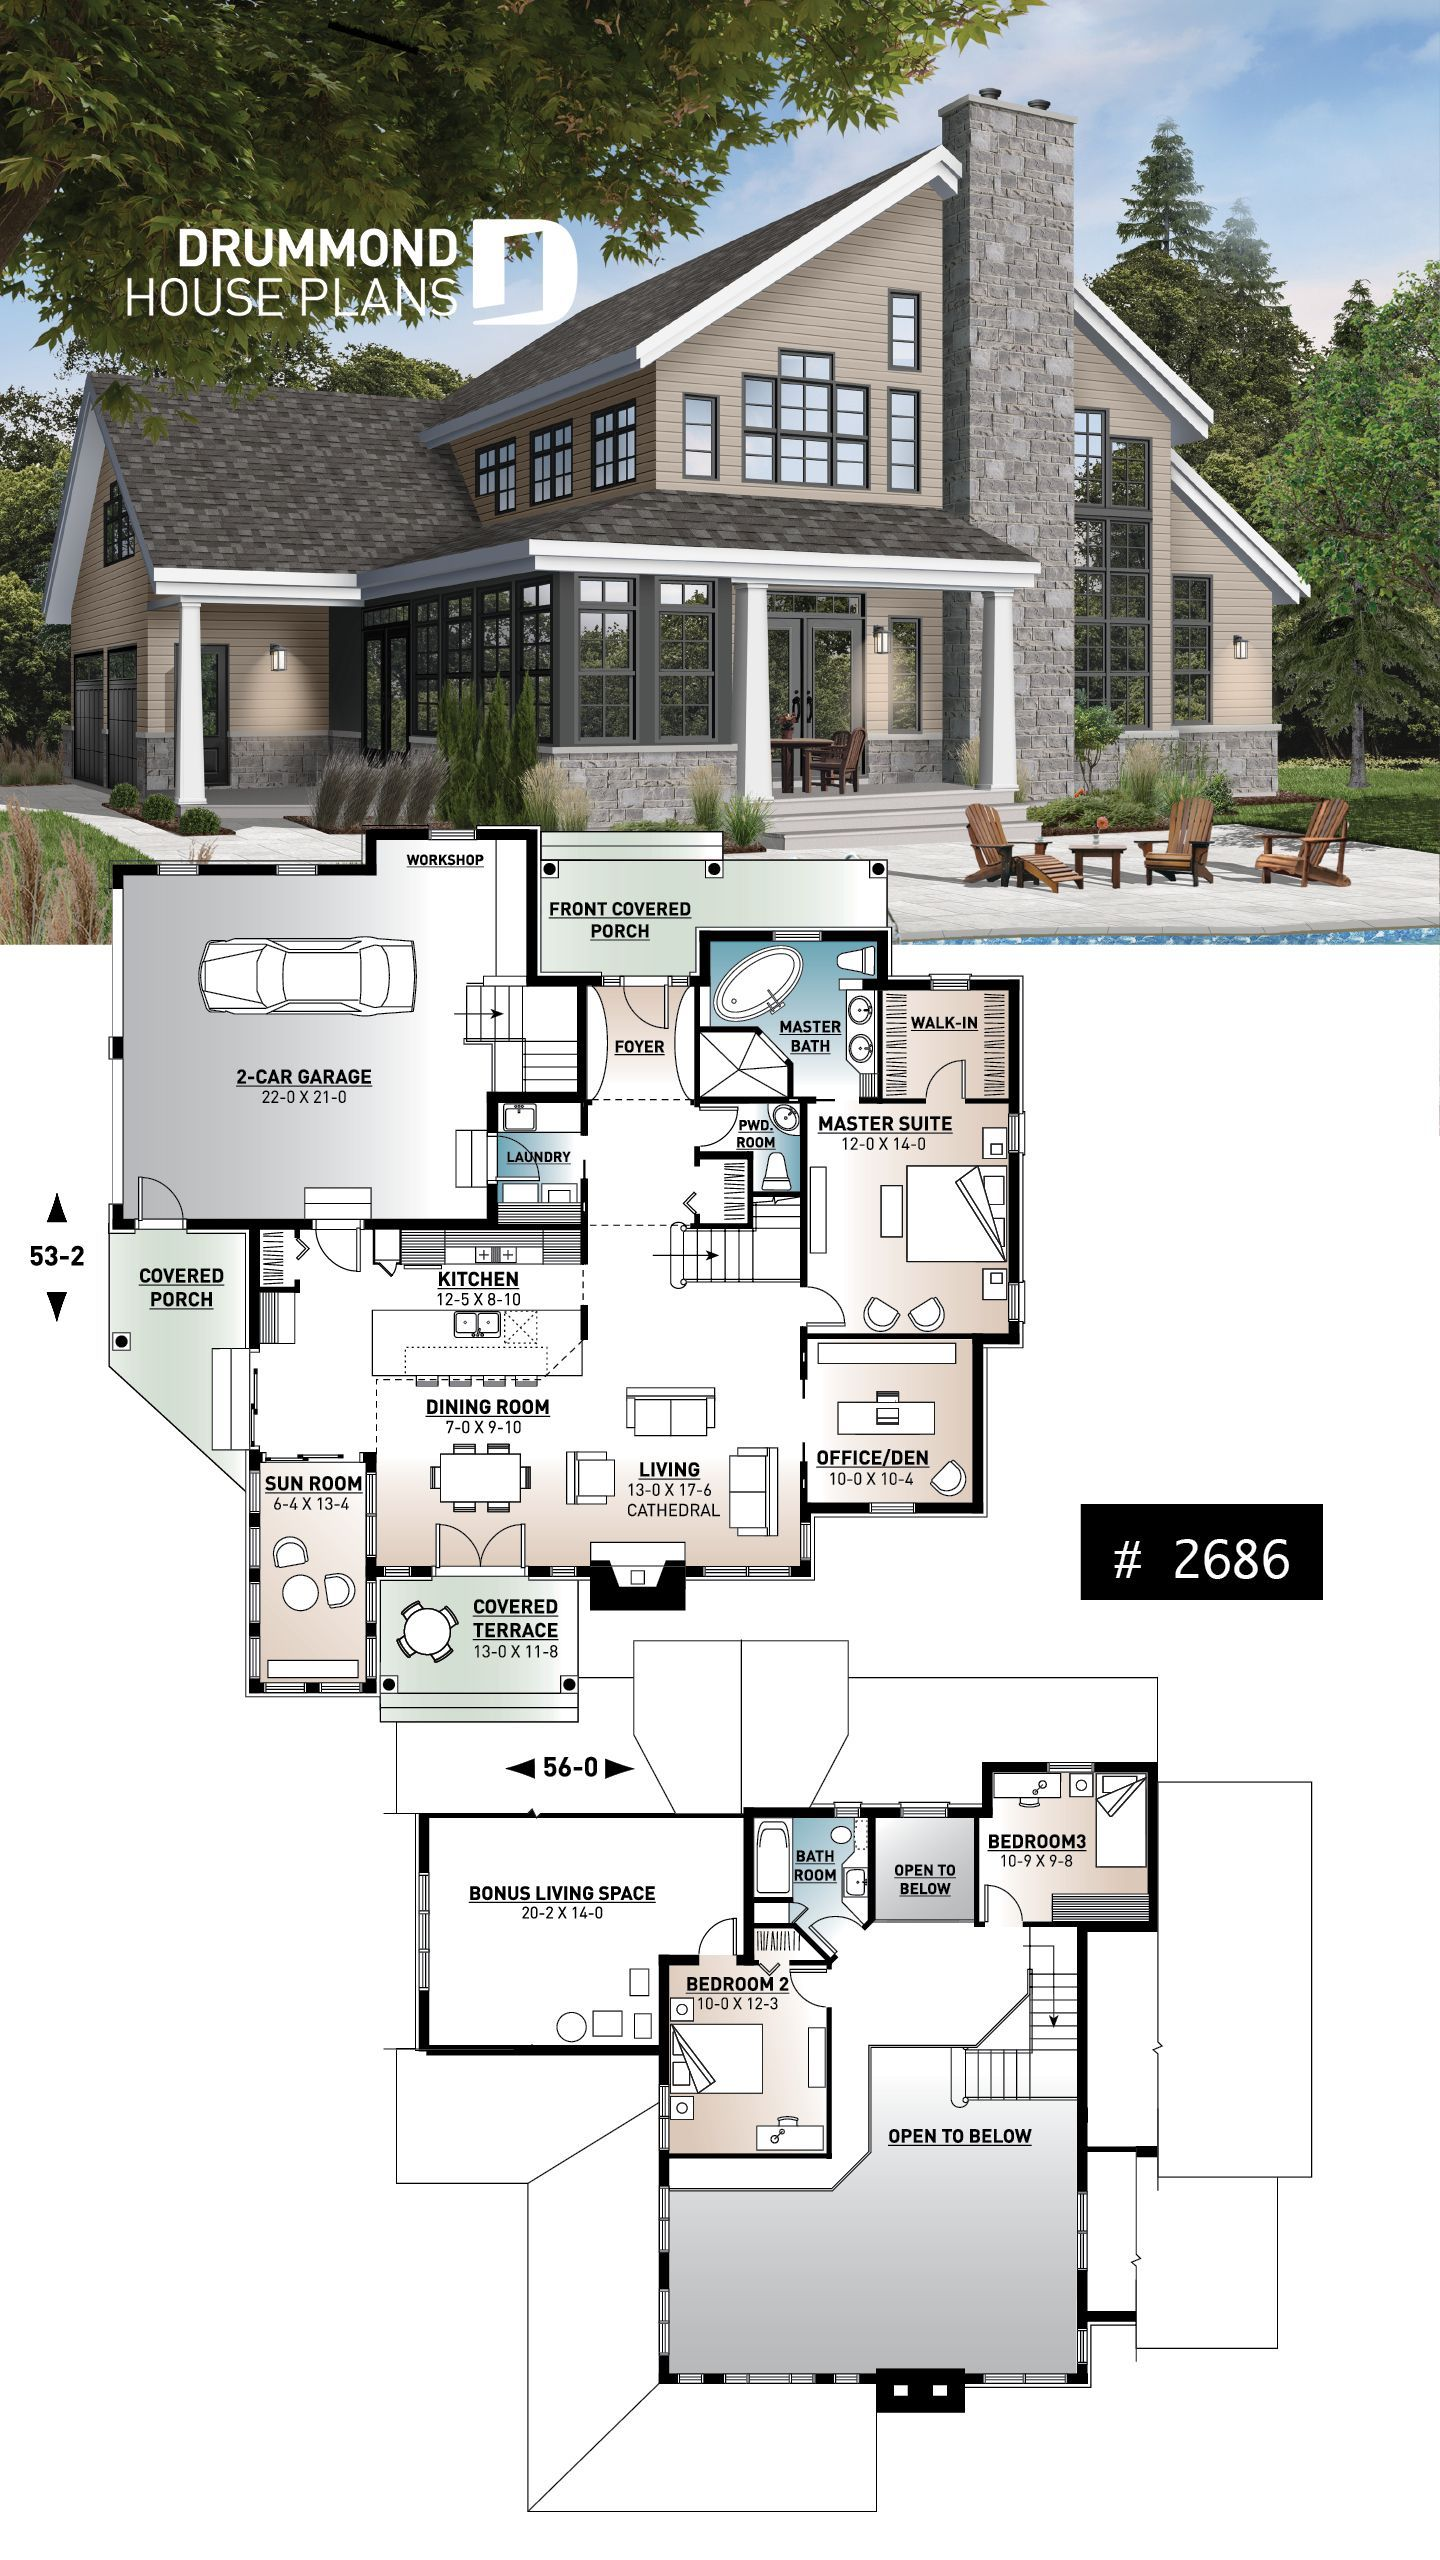 2 Car Garage Country House Plan Of 3 Bedrooms Sun Room Home Office Huge Kitchen I Country Cottage House Plans French Country House Plans Cottage House Plans